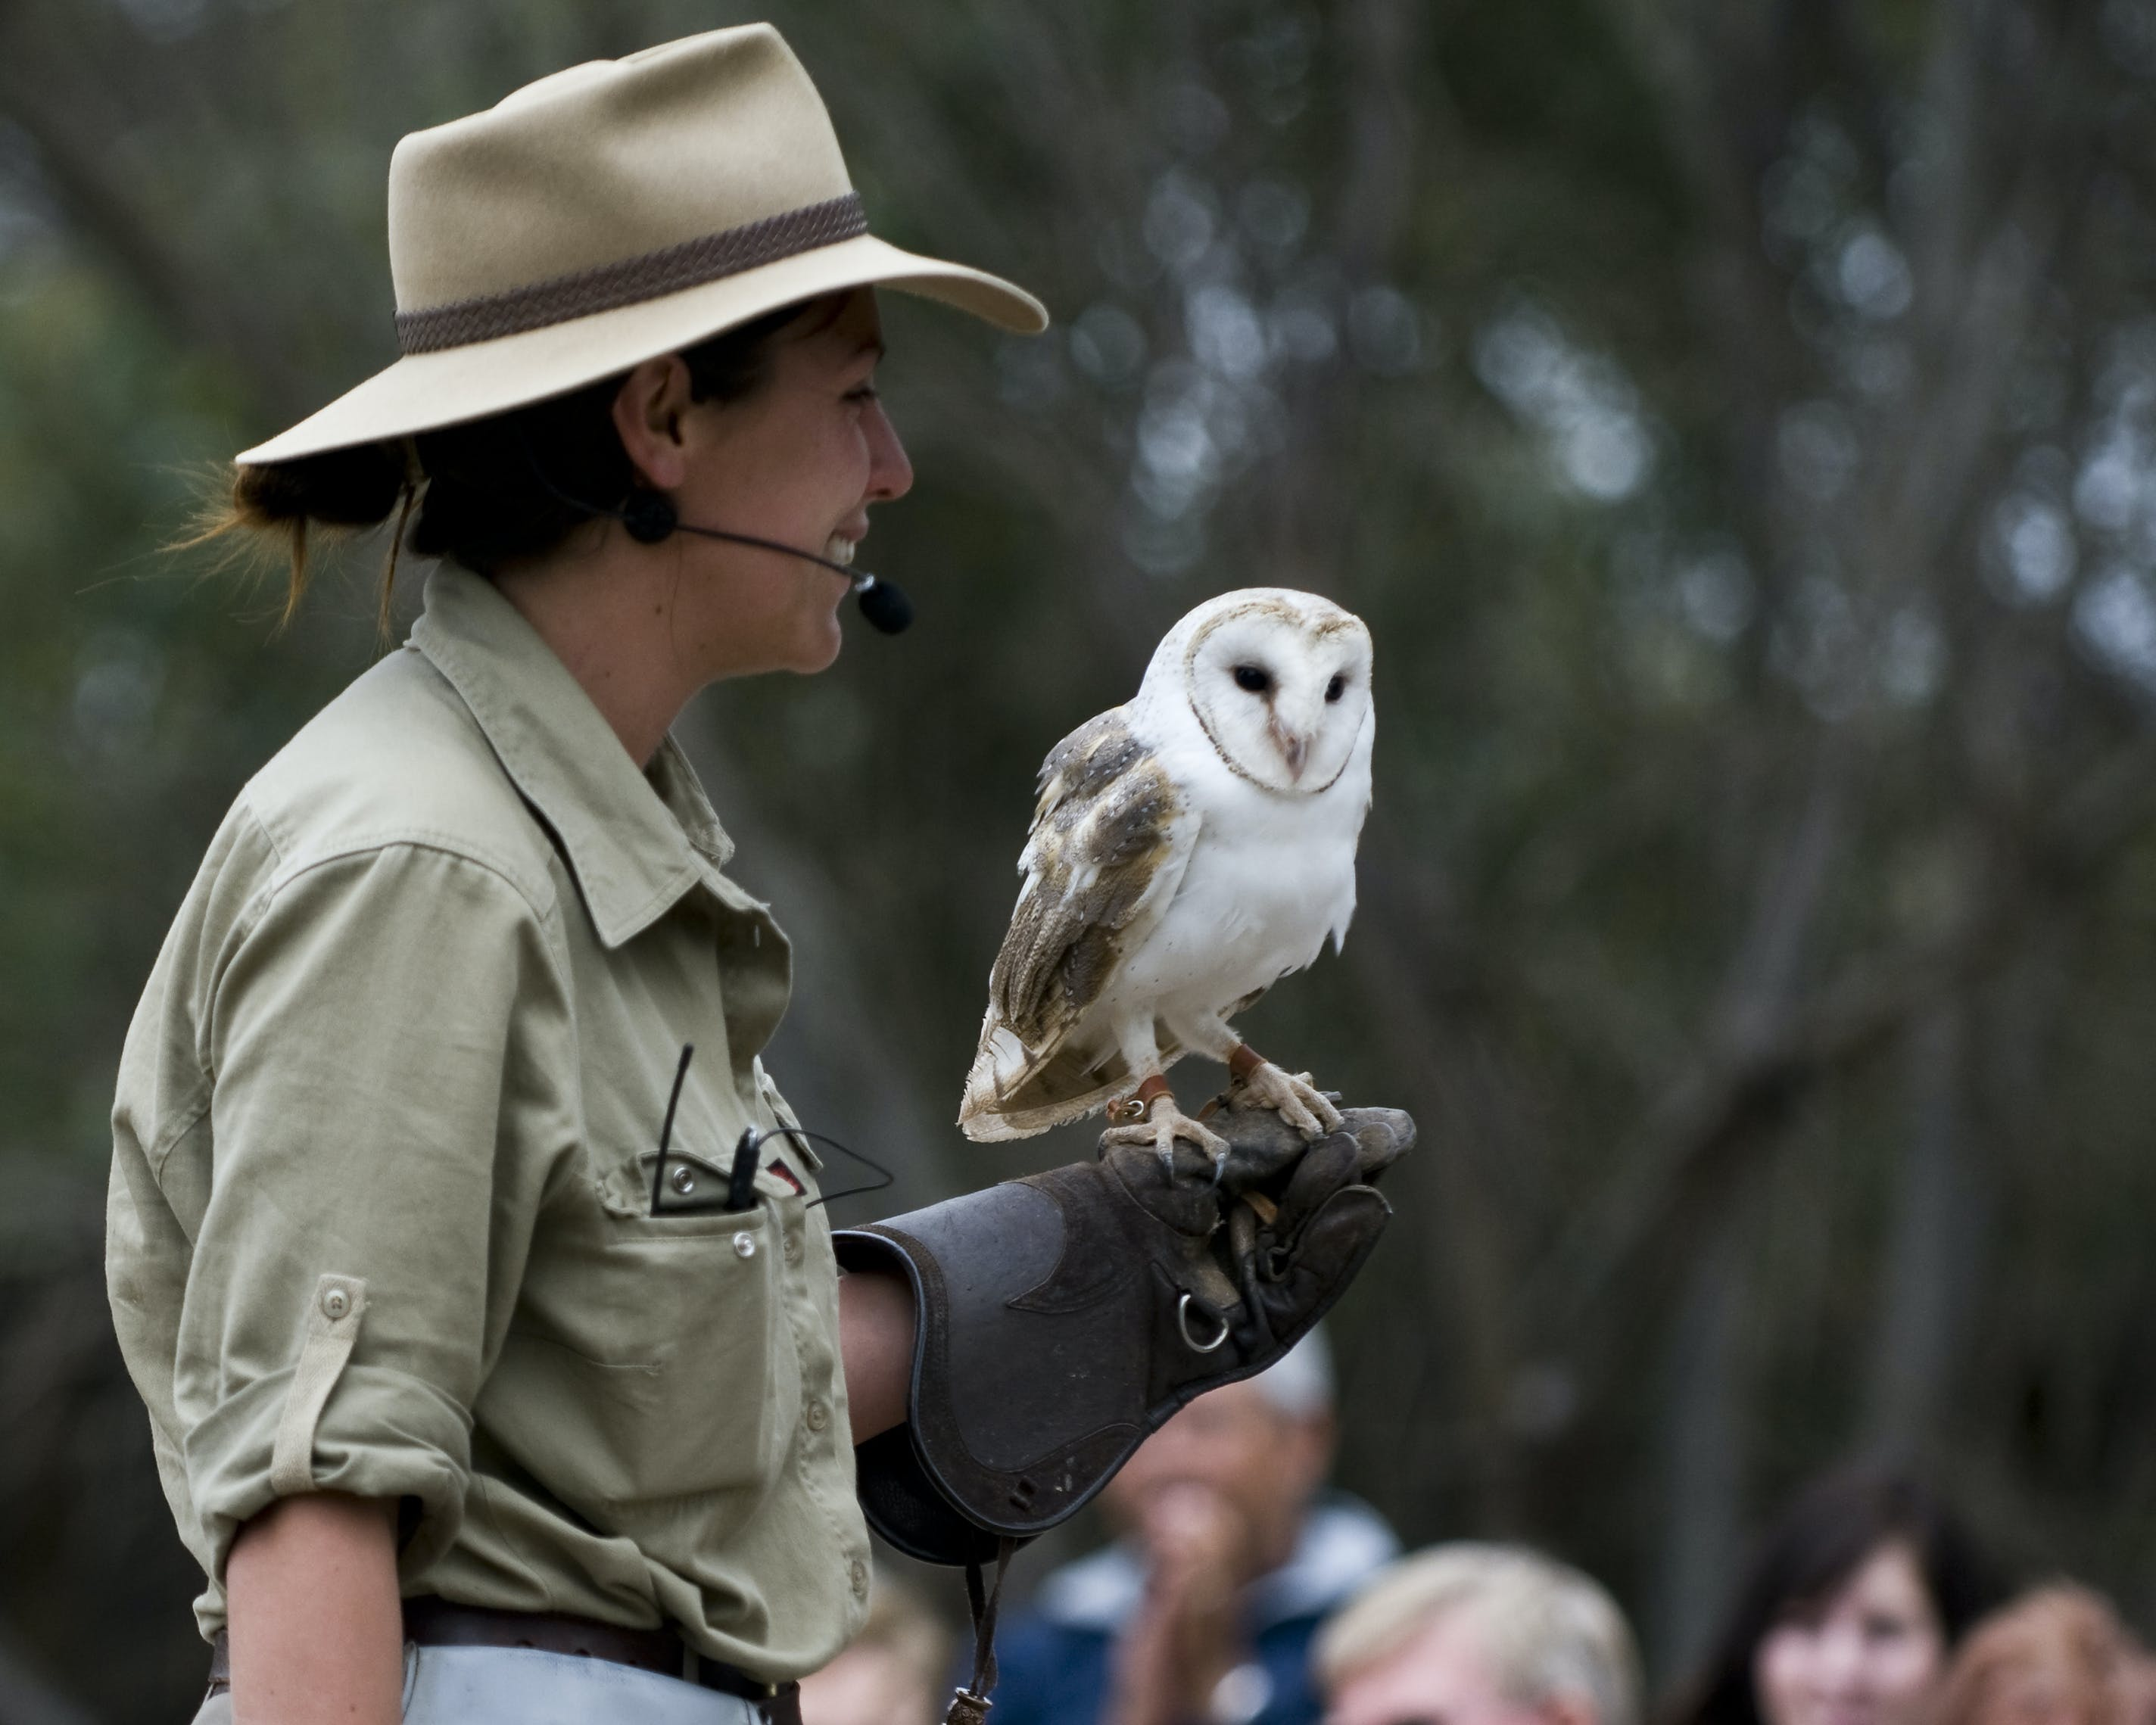 #Raptor Domain interactive wildlife experience